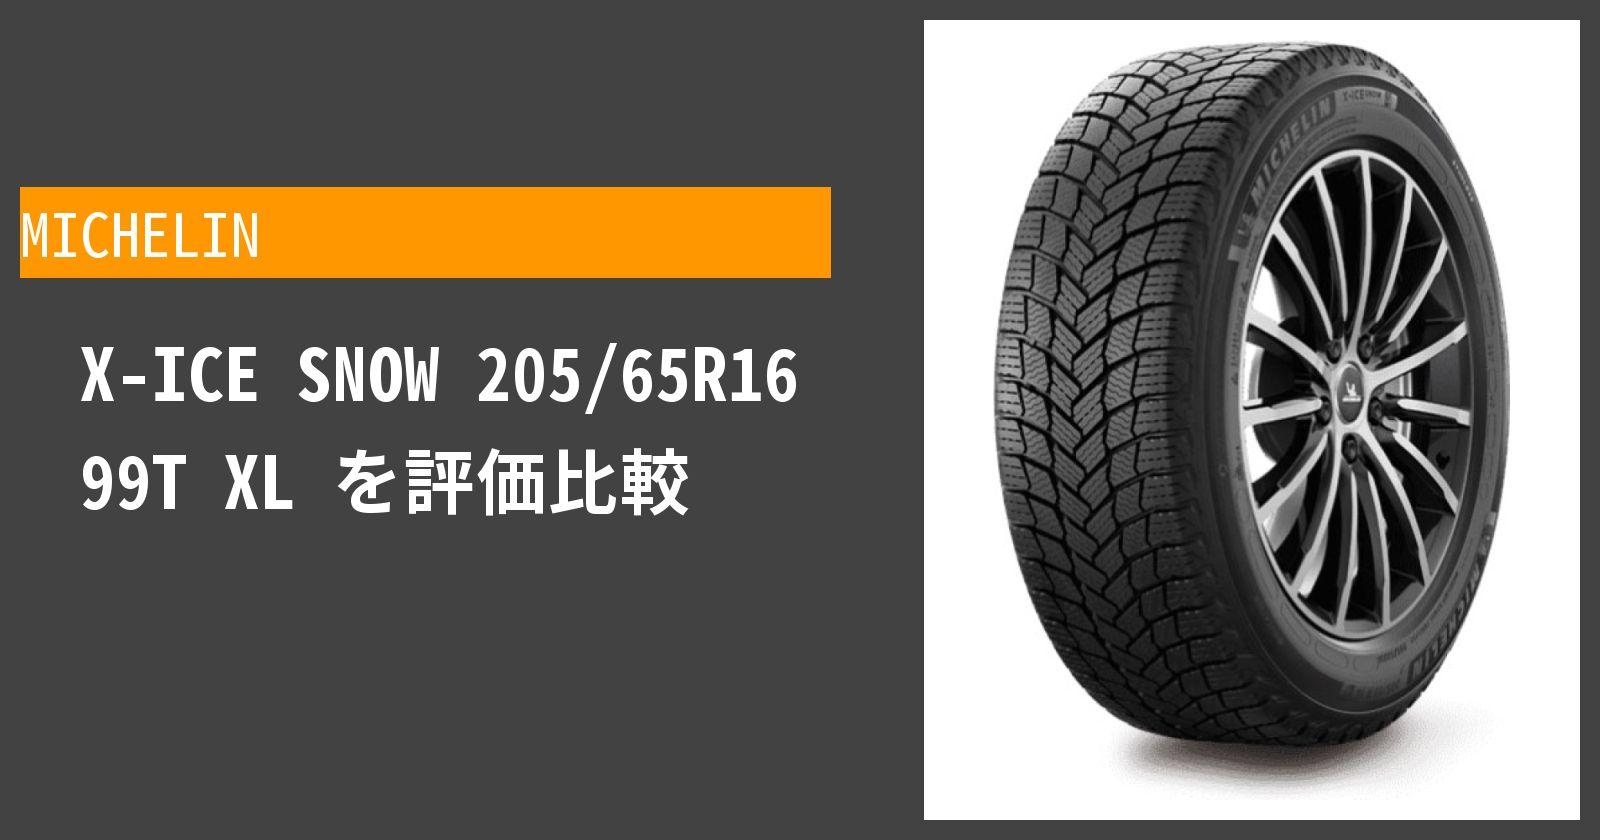 X-ICE SNOW 205/65R16 99T XLを徹底評価